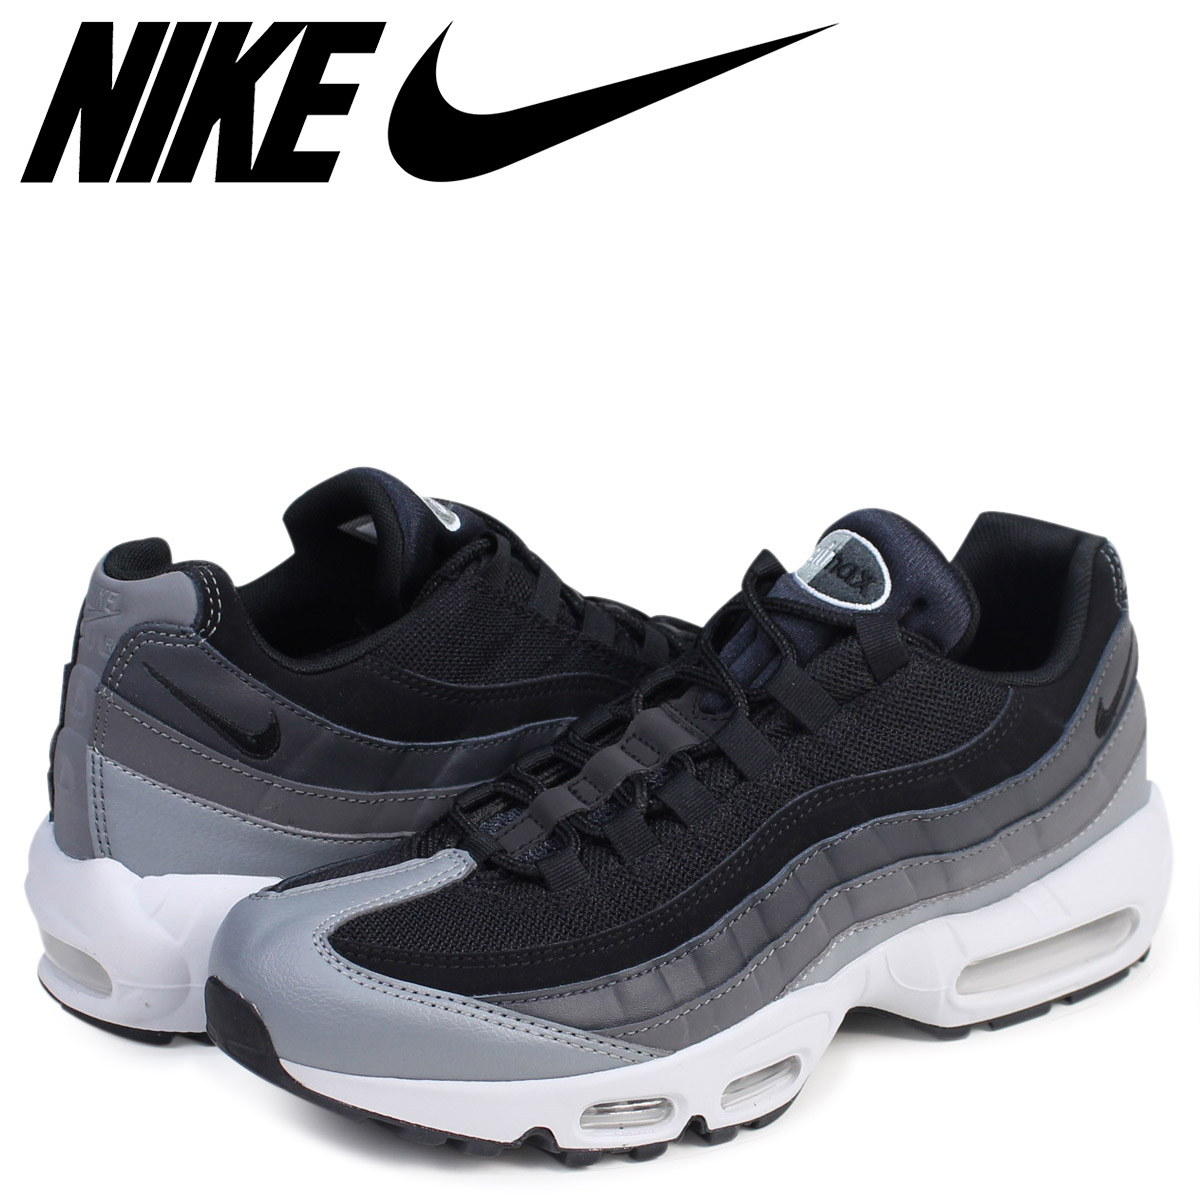 online store 986b7 8d610 Sugar Online Shop  Nike NIKE Air Max 95 essential sneakers AIR MAX 95  ESSENTIAL 749,766-021 men s shoes black  7 14 Shinnyu load    Rakuten  Global Market